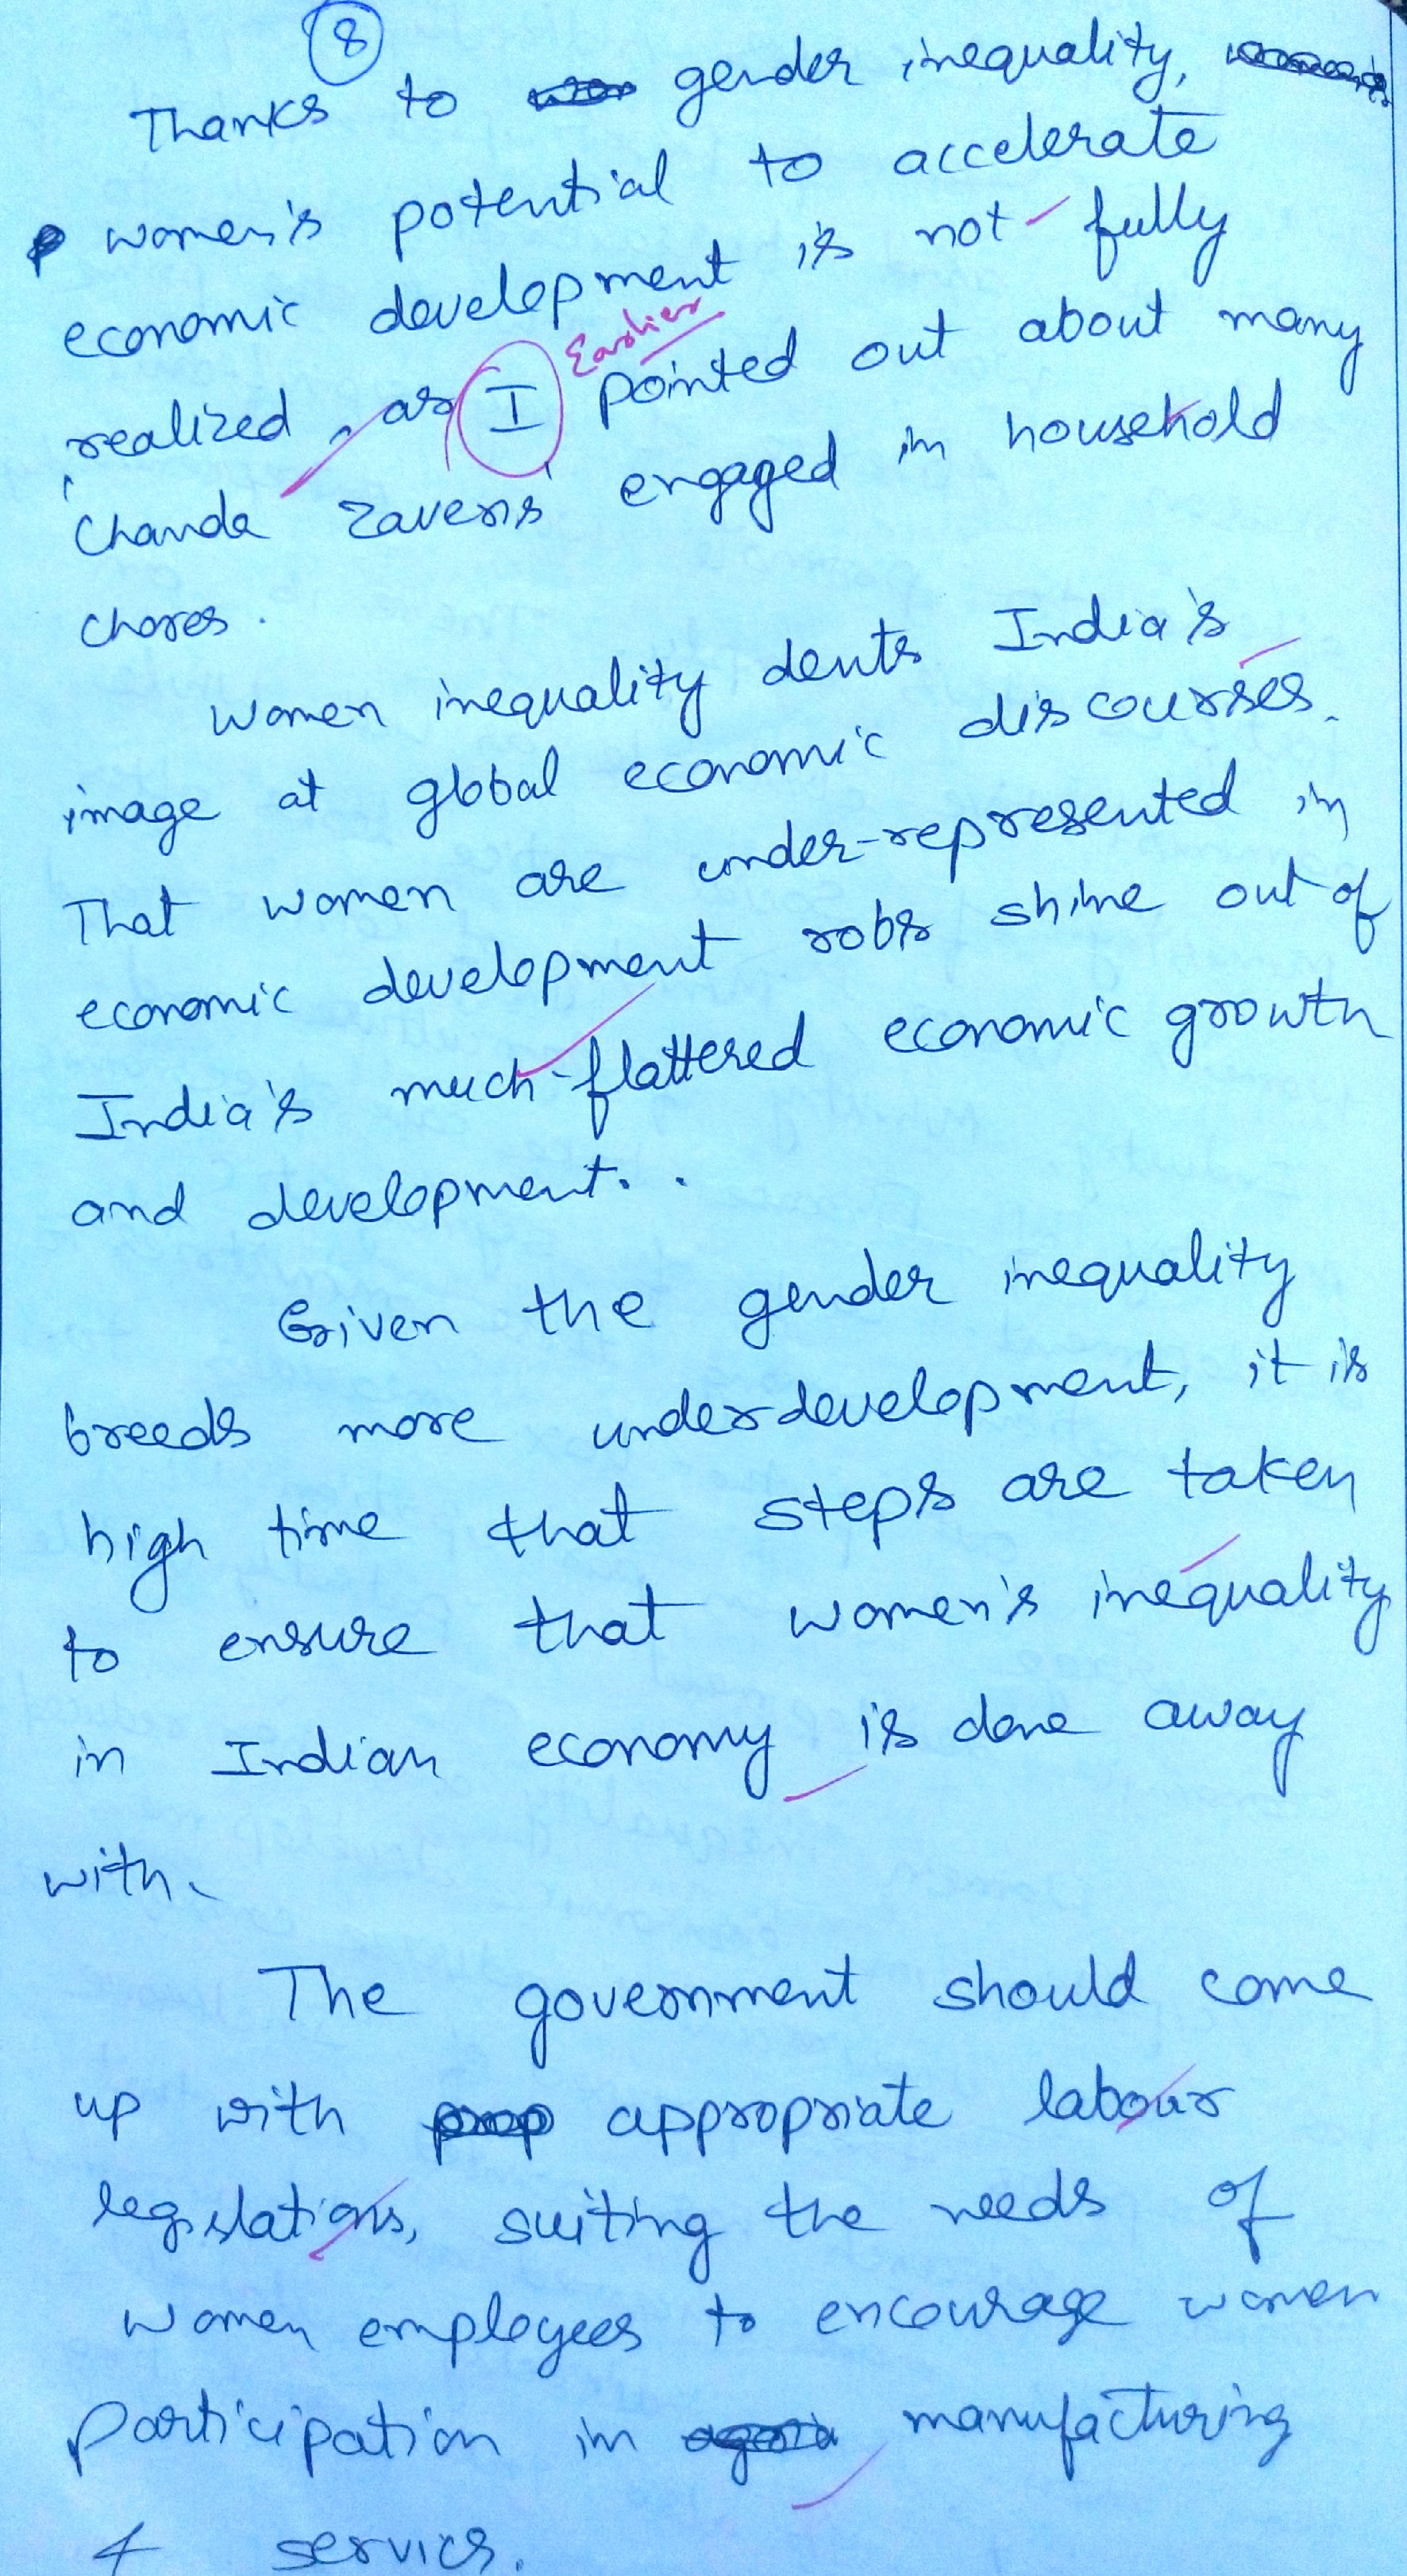 essay on women power power raising the race black career women  sample essay balaji d k ias rank cse insights hrvj2a6ye018babw1tke1djf y9aaslw0c318bfeb8hhw7d1g